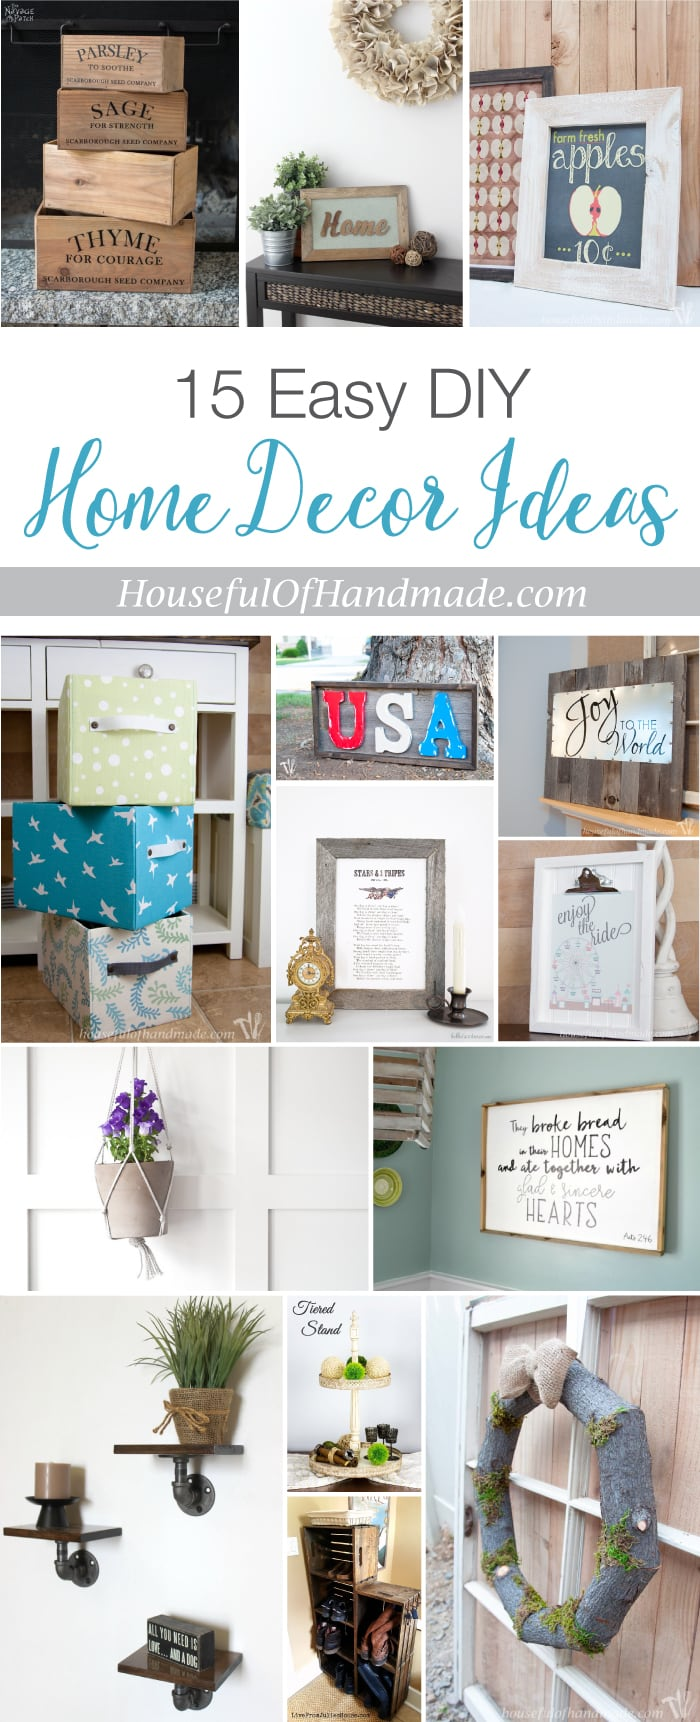 I Love These Easy DIY Home Decor Ideas! I Canu0027t Wait To Make